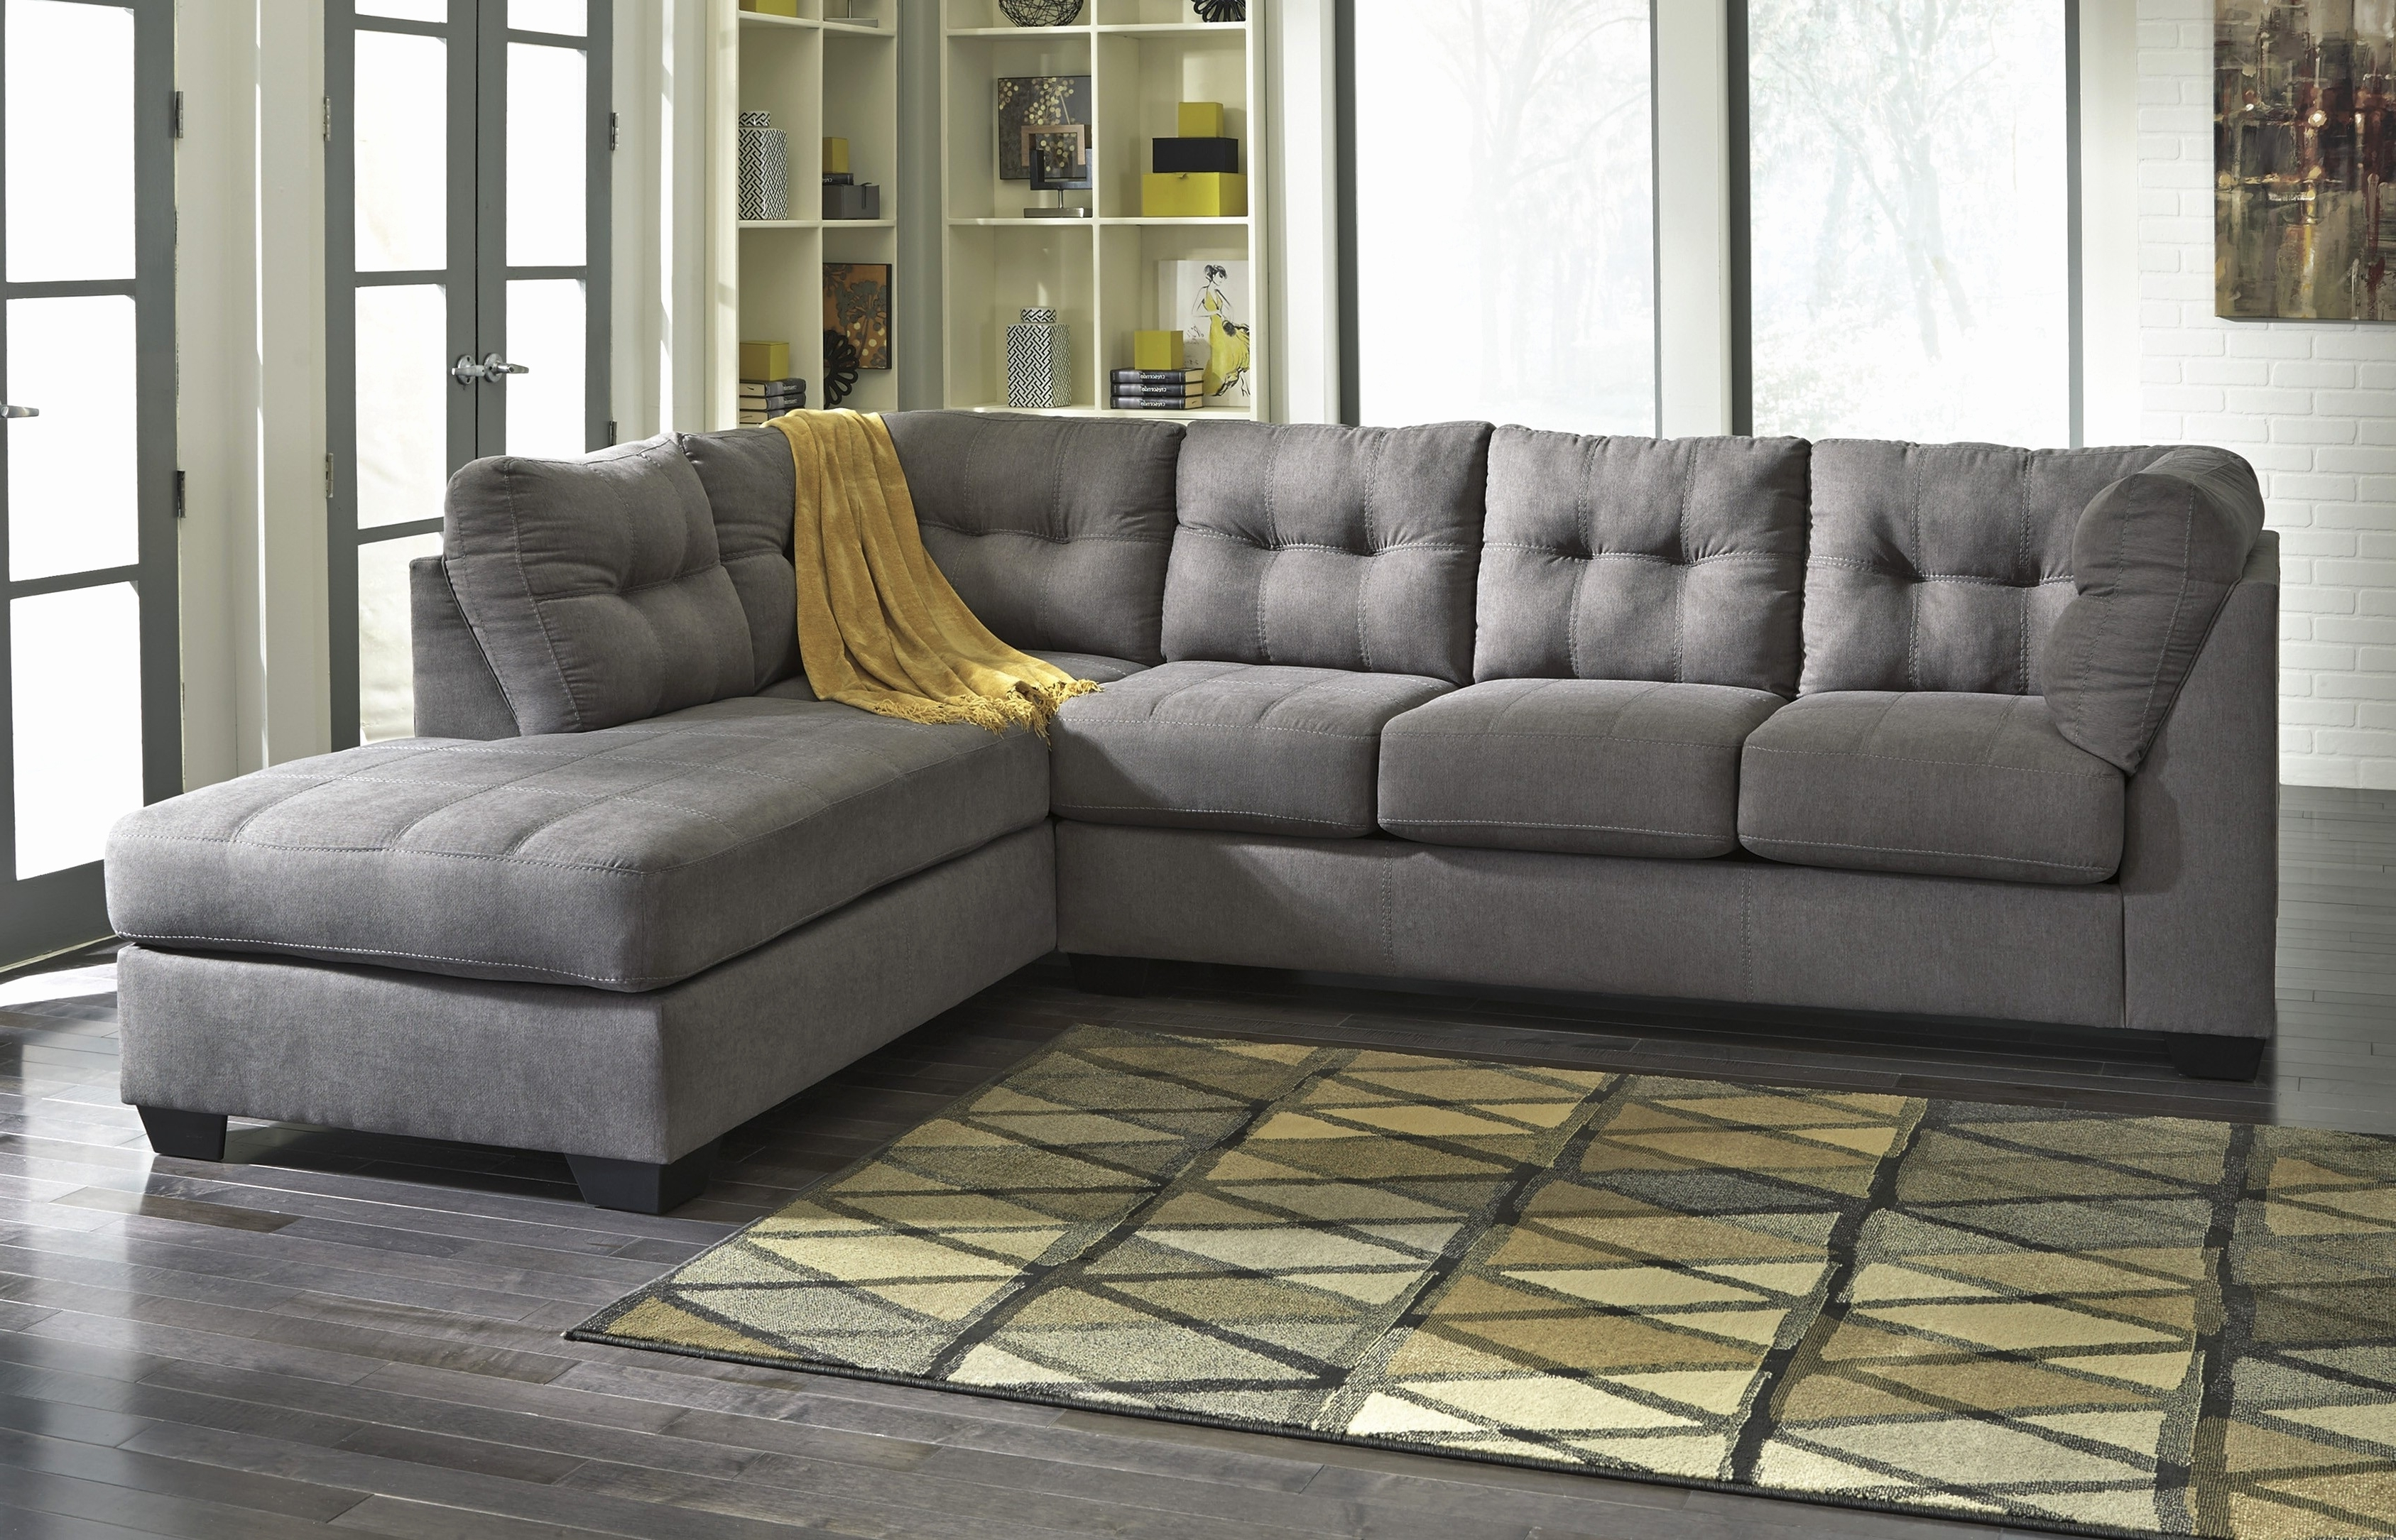 Sectional Sofas At Ashley Furniture Pertaining To Well Known Unique Sectional Sleeper Sofa Ashley 2018 – Couches And Sofas Ideas (View 5 of 20)